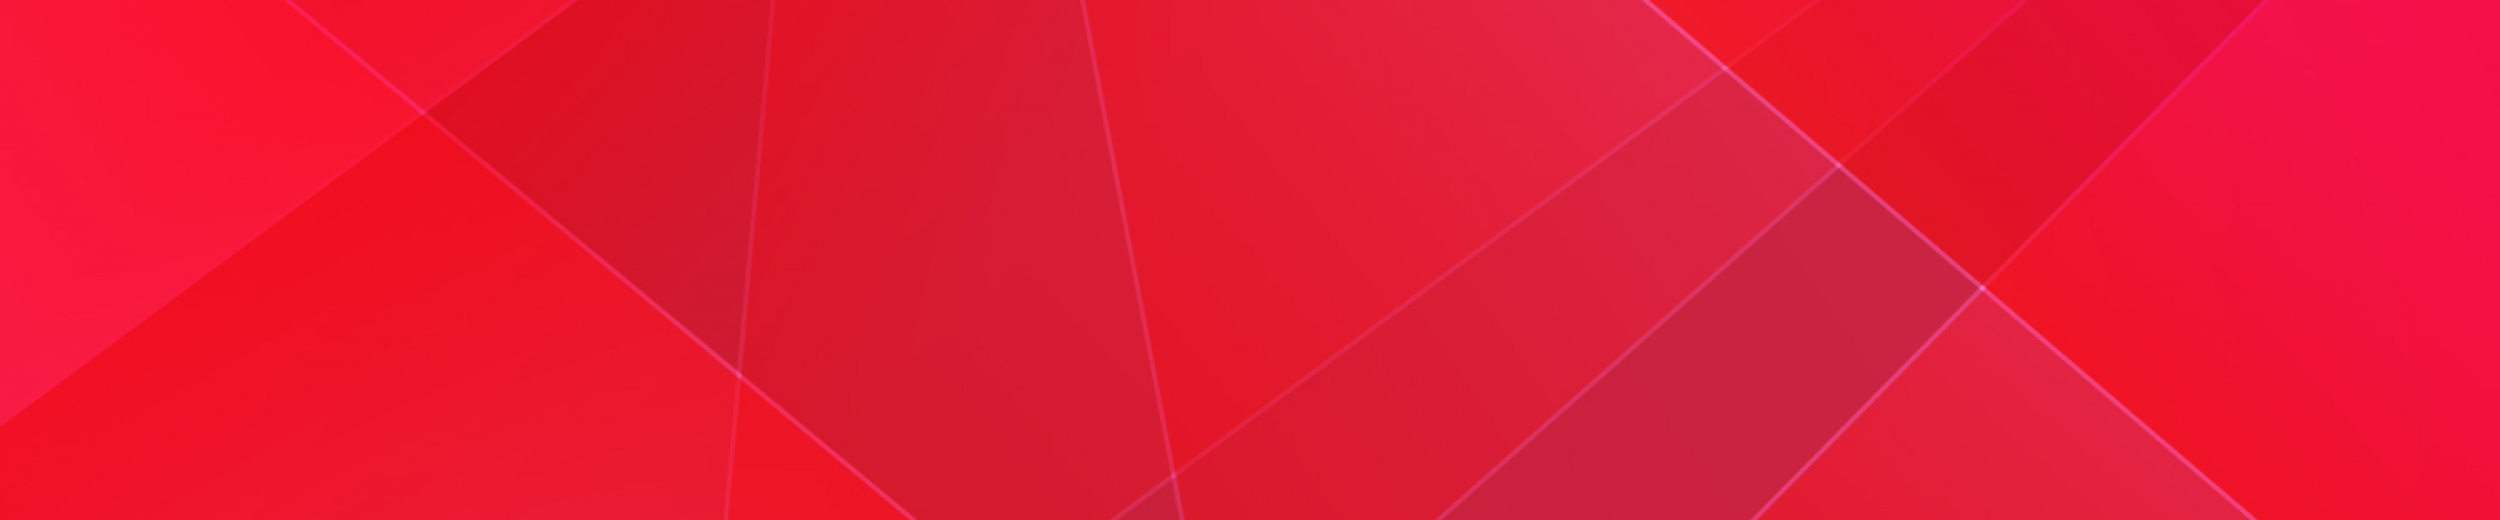 Generic red banner